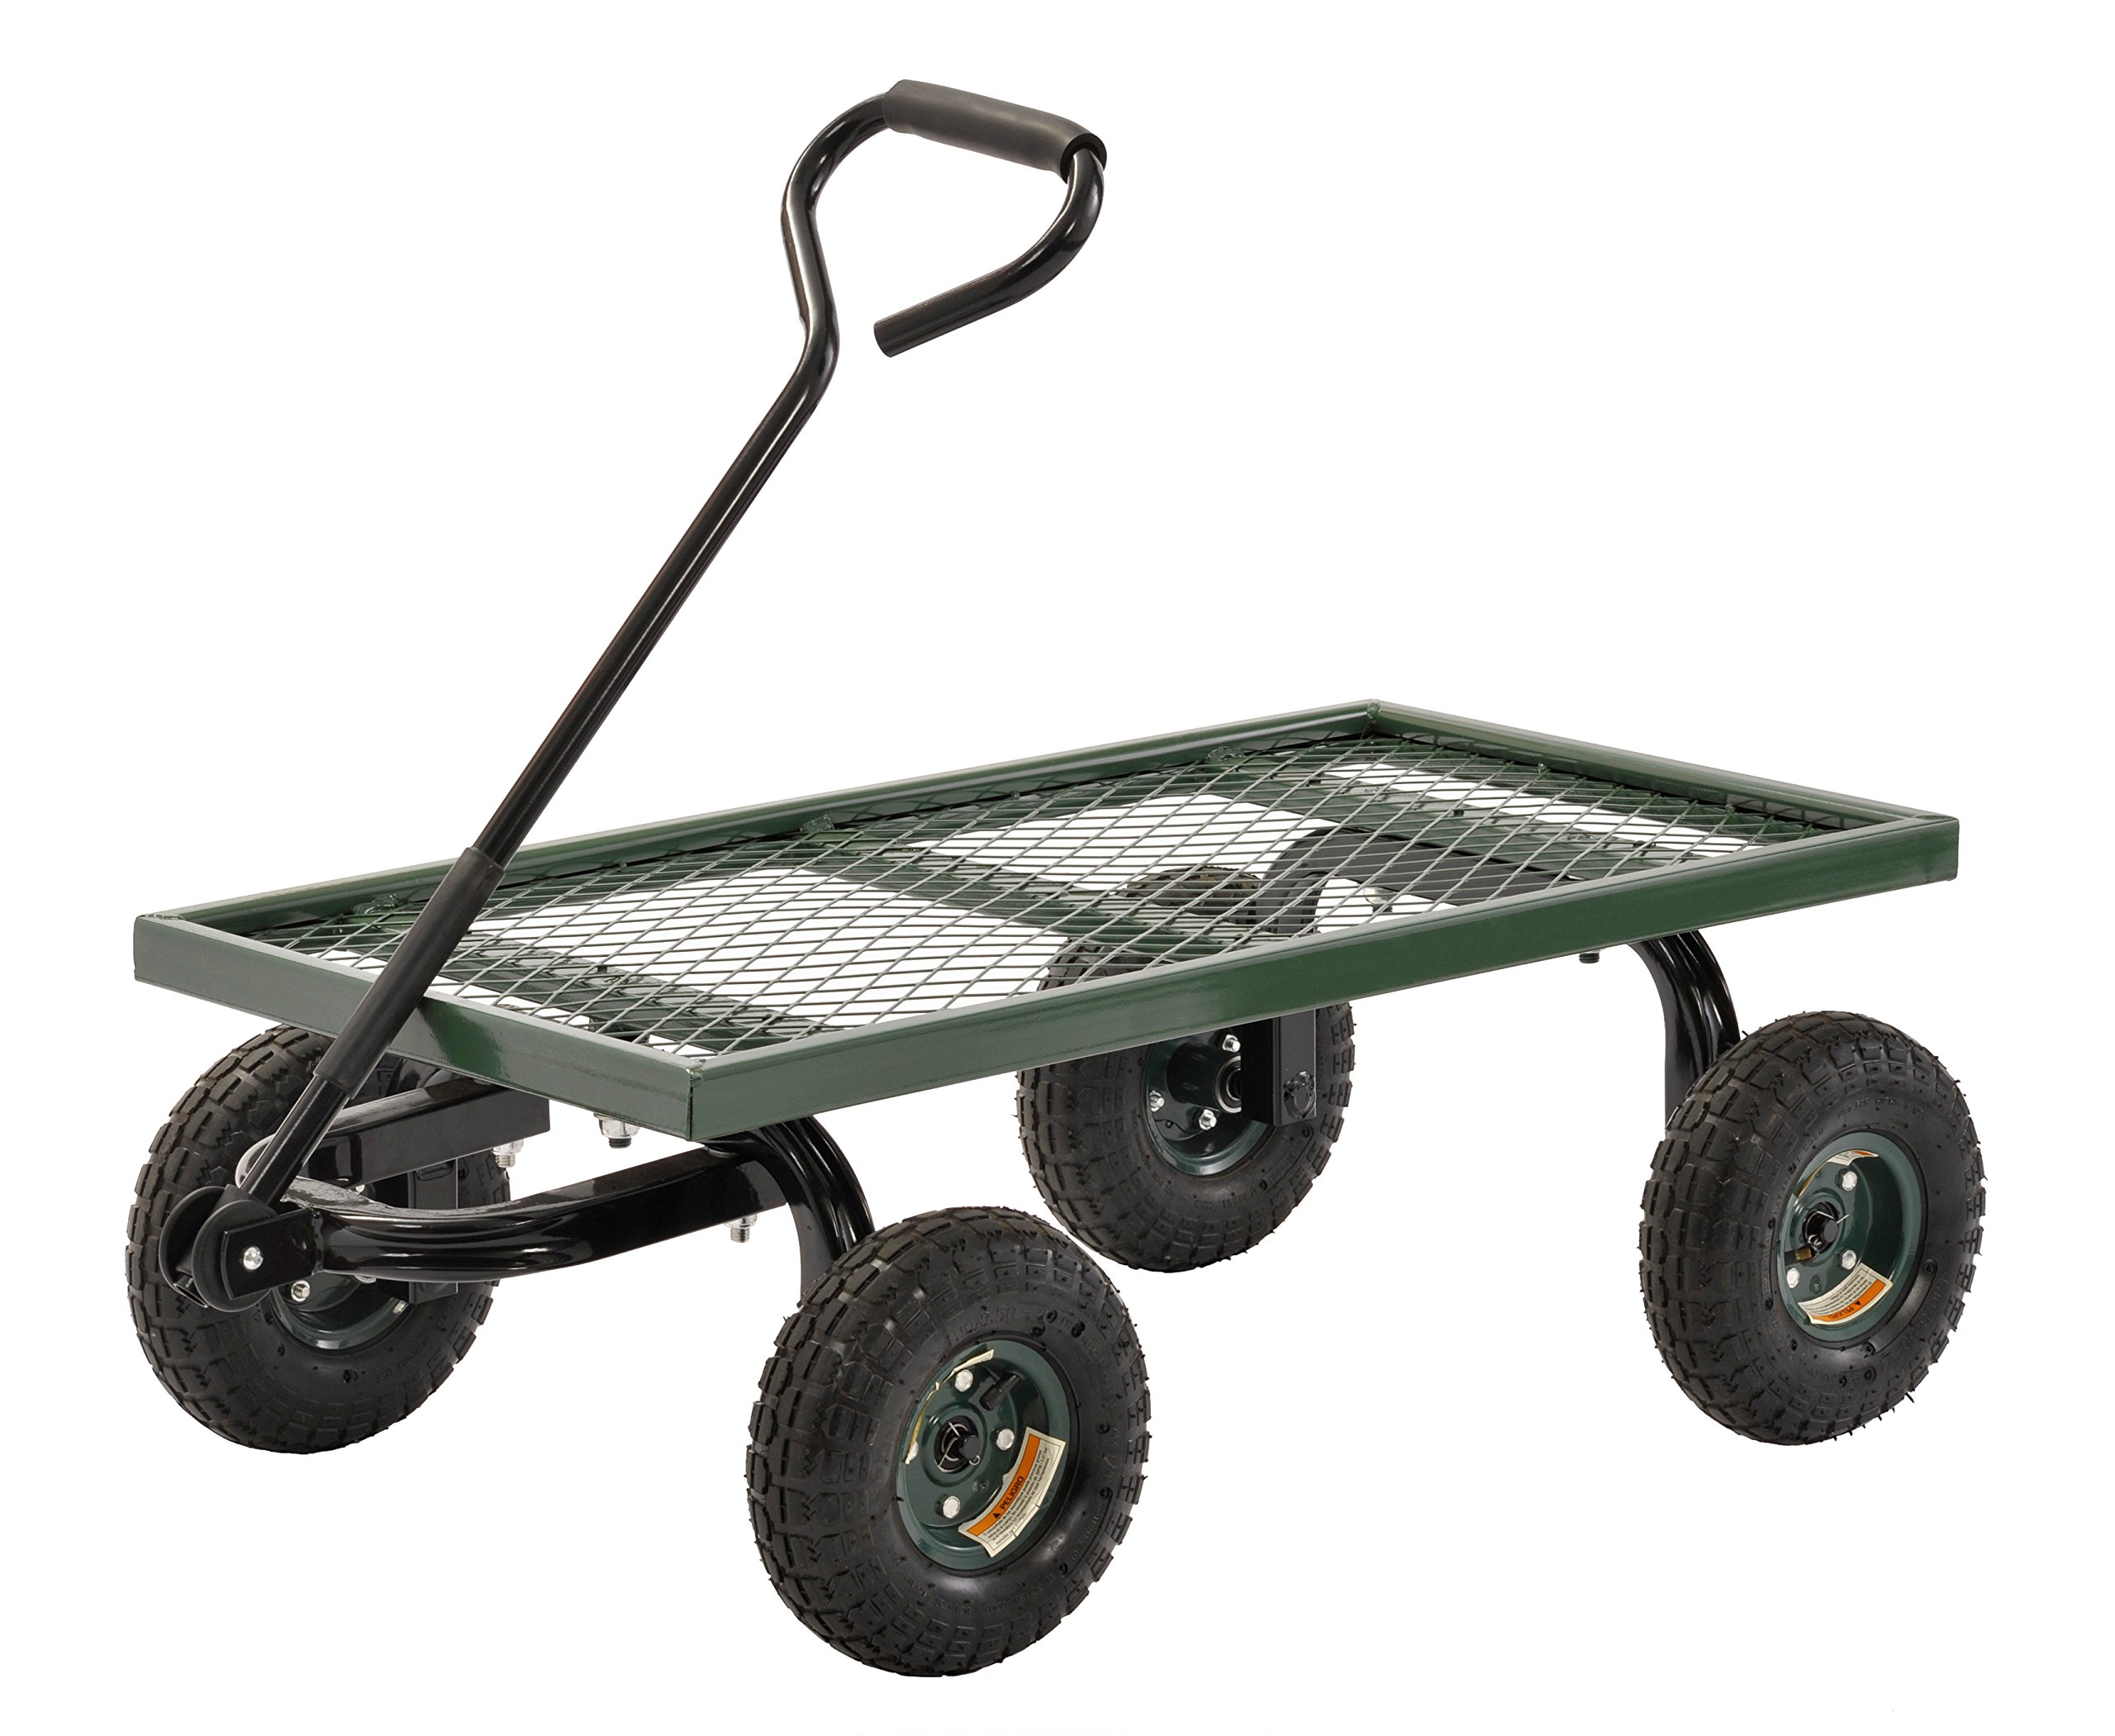 Sandusky Lee FW Steel Crate Wagon, Green, 1000 lbs Load Capacity, 14-1/4'' Height, 38'' Length x 20'' Width